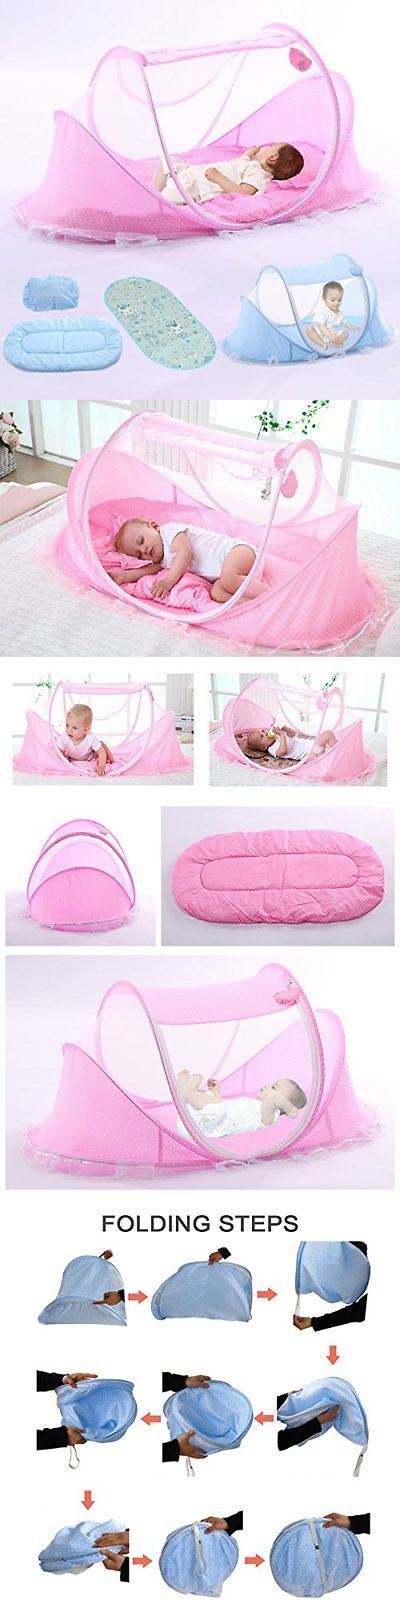 Canopies and Netting 180905: Youdirect Baby Travel Bed Foldable Zippered Mosquito Net Soft Crib Portable Camp -> BUY IT NOW ONLY: $46.89 on eBay!